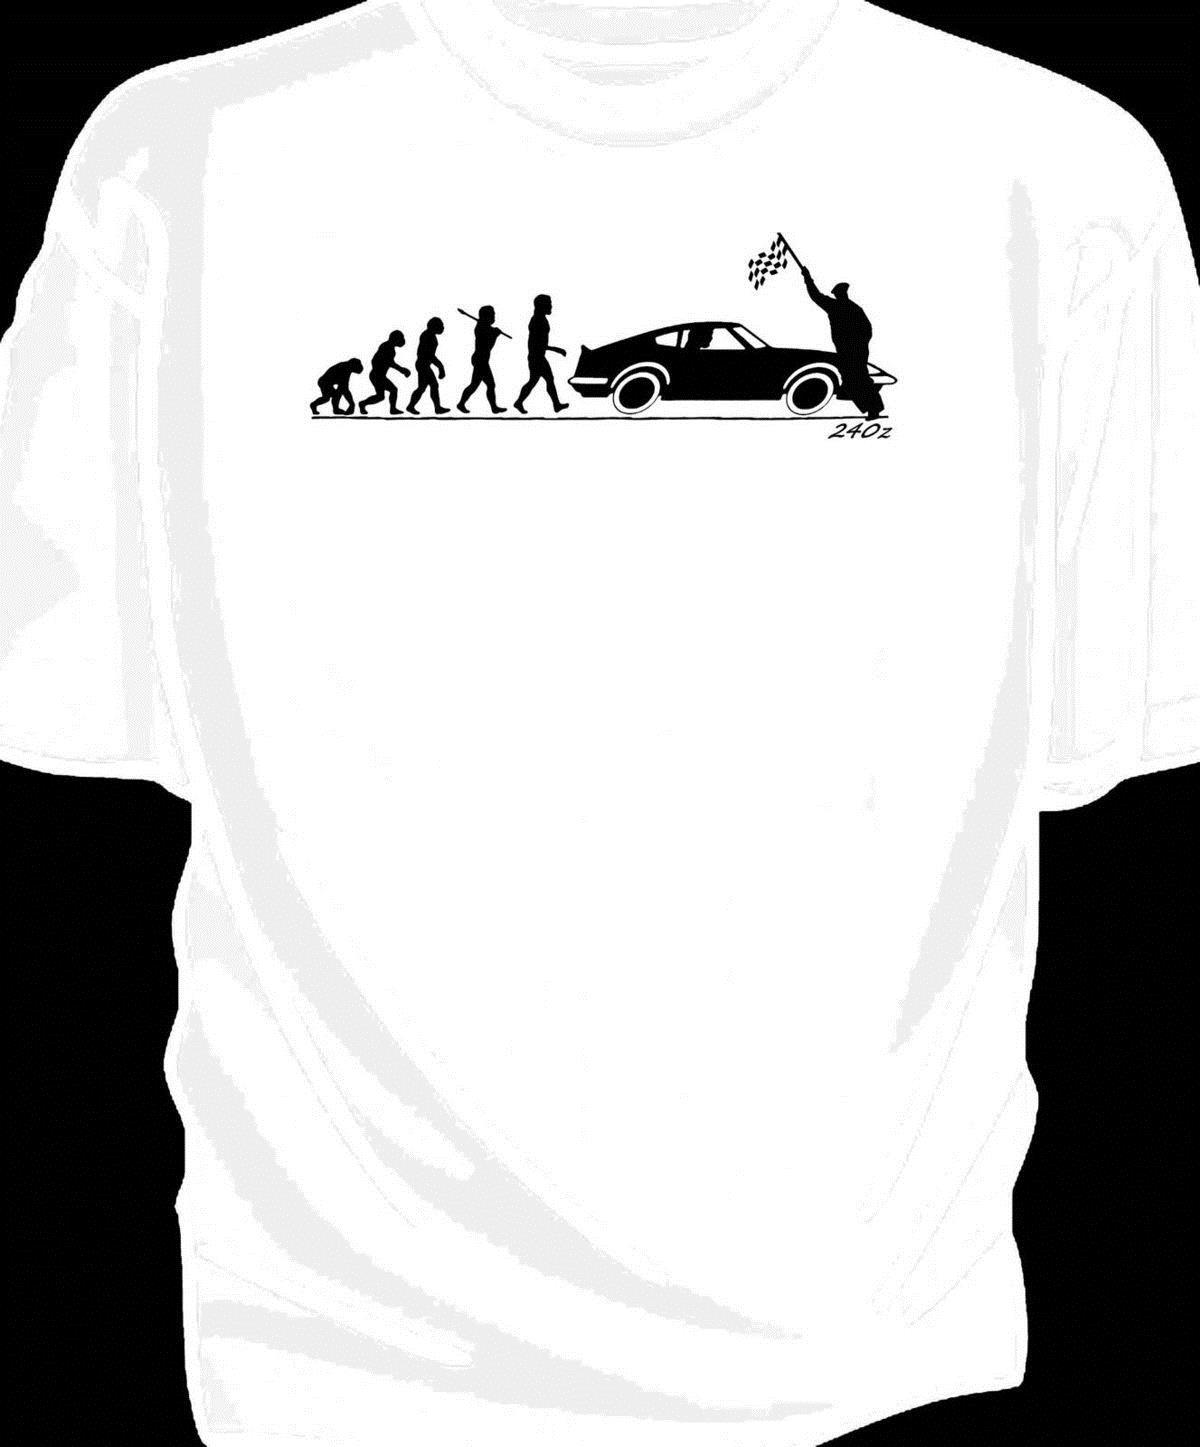 /'Evolution of Man/' Chequered flag t-shirt classic Datsun 260z